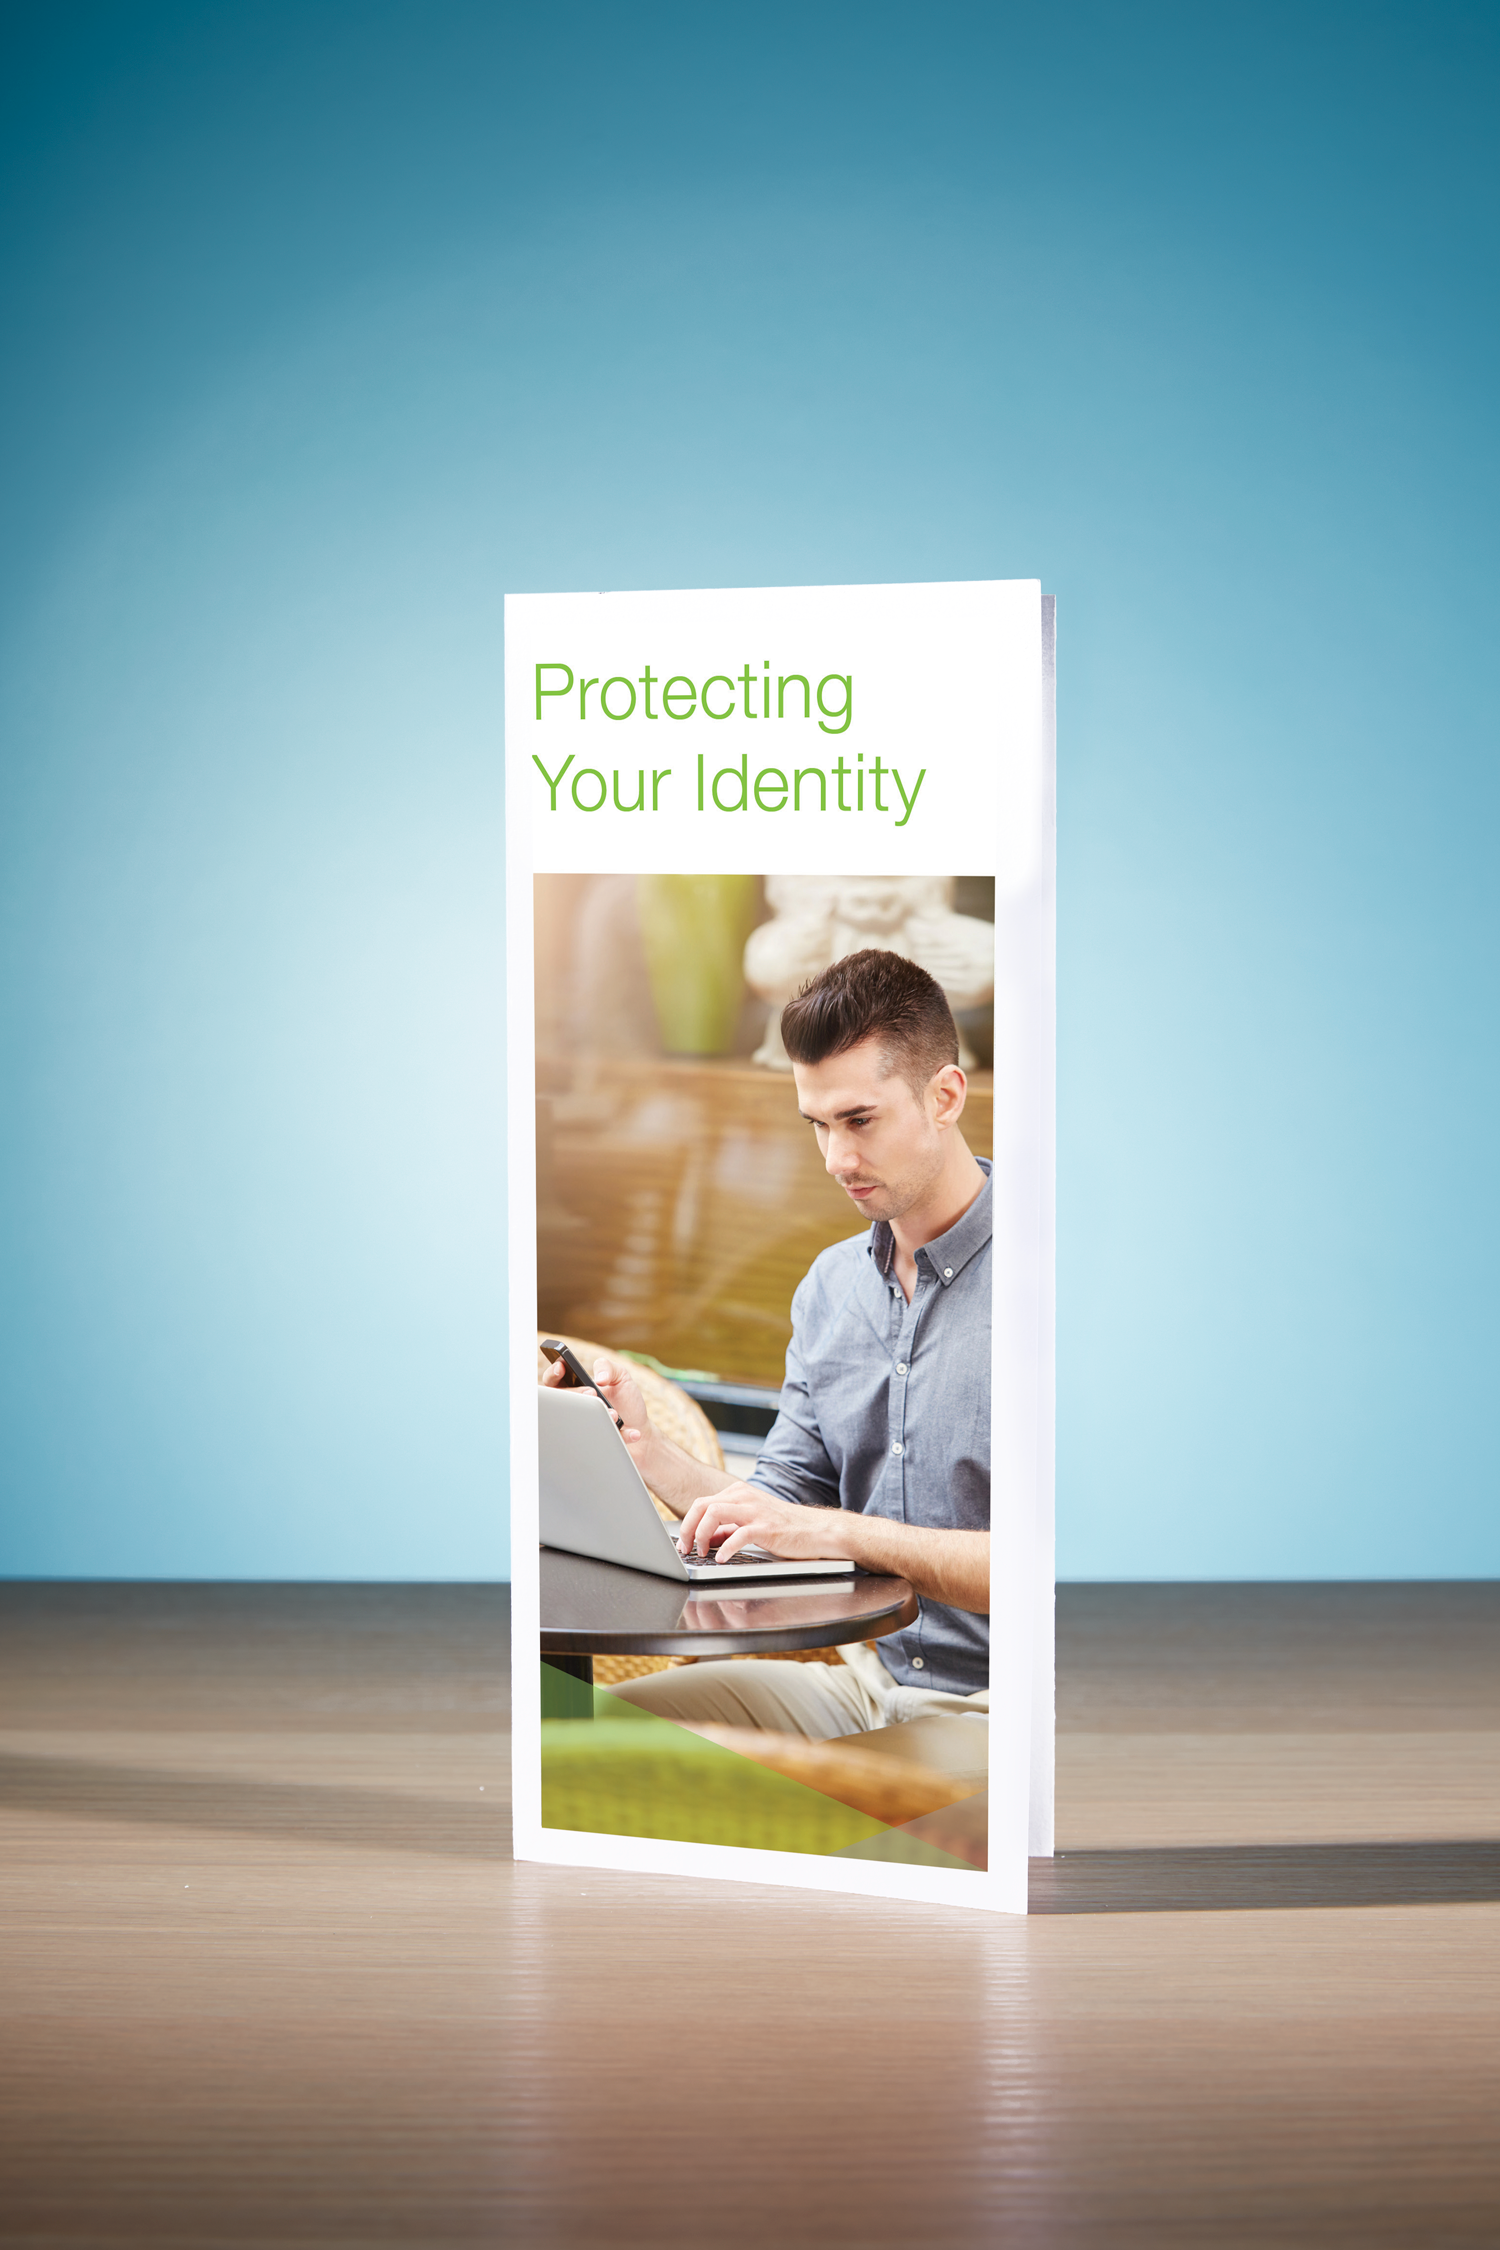 Protecting Your Identity Brochures - 25/pkg - #879